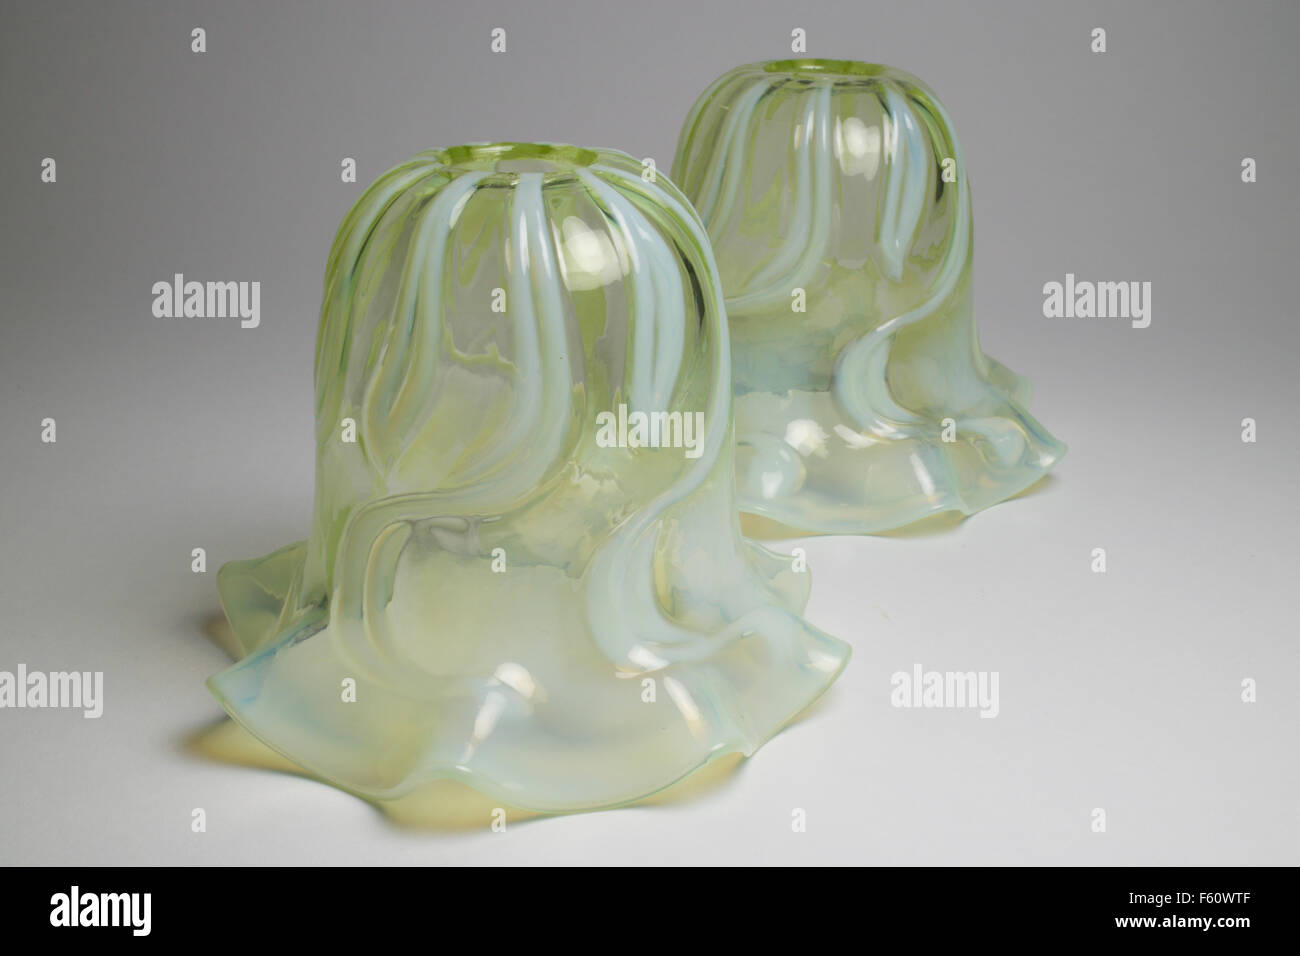 Lamp shades stock photos lamp shades stock images alamy antique pair of art nouveau opalescent glass light lamp shades vaseline stock image mozeypictures Images